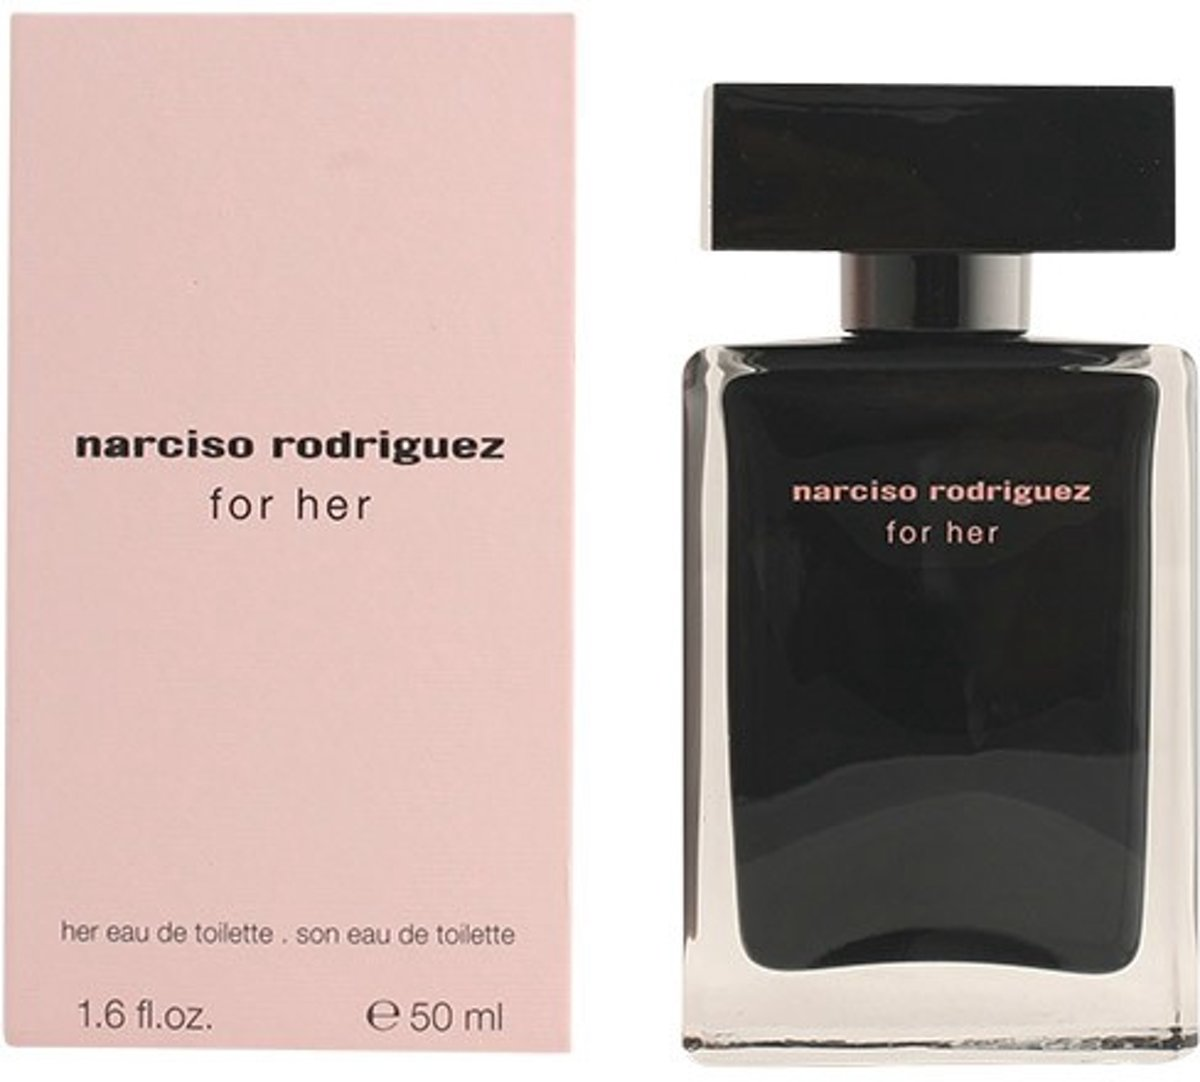 MULTI BUNDEL 2 stuks NARCISO RODRIGUEZ FOR HER eau de toilette spray 50 ml